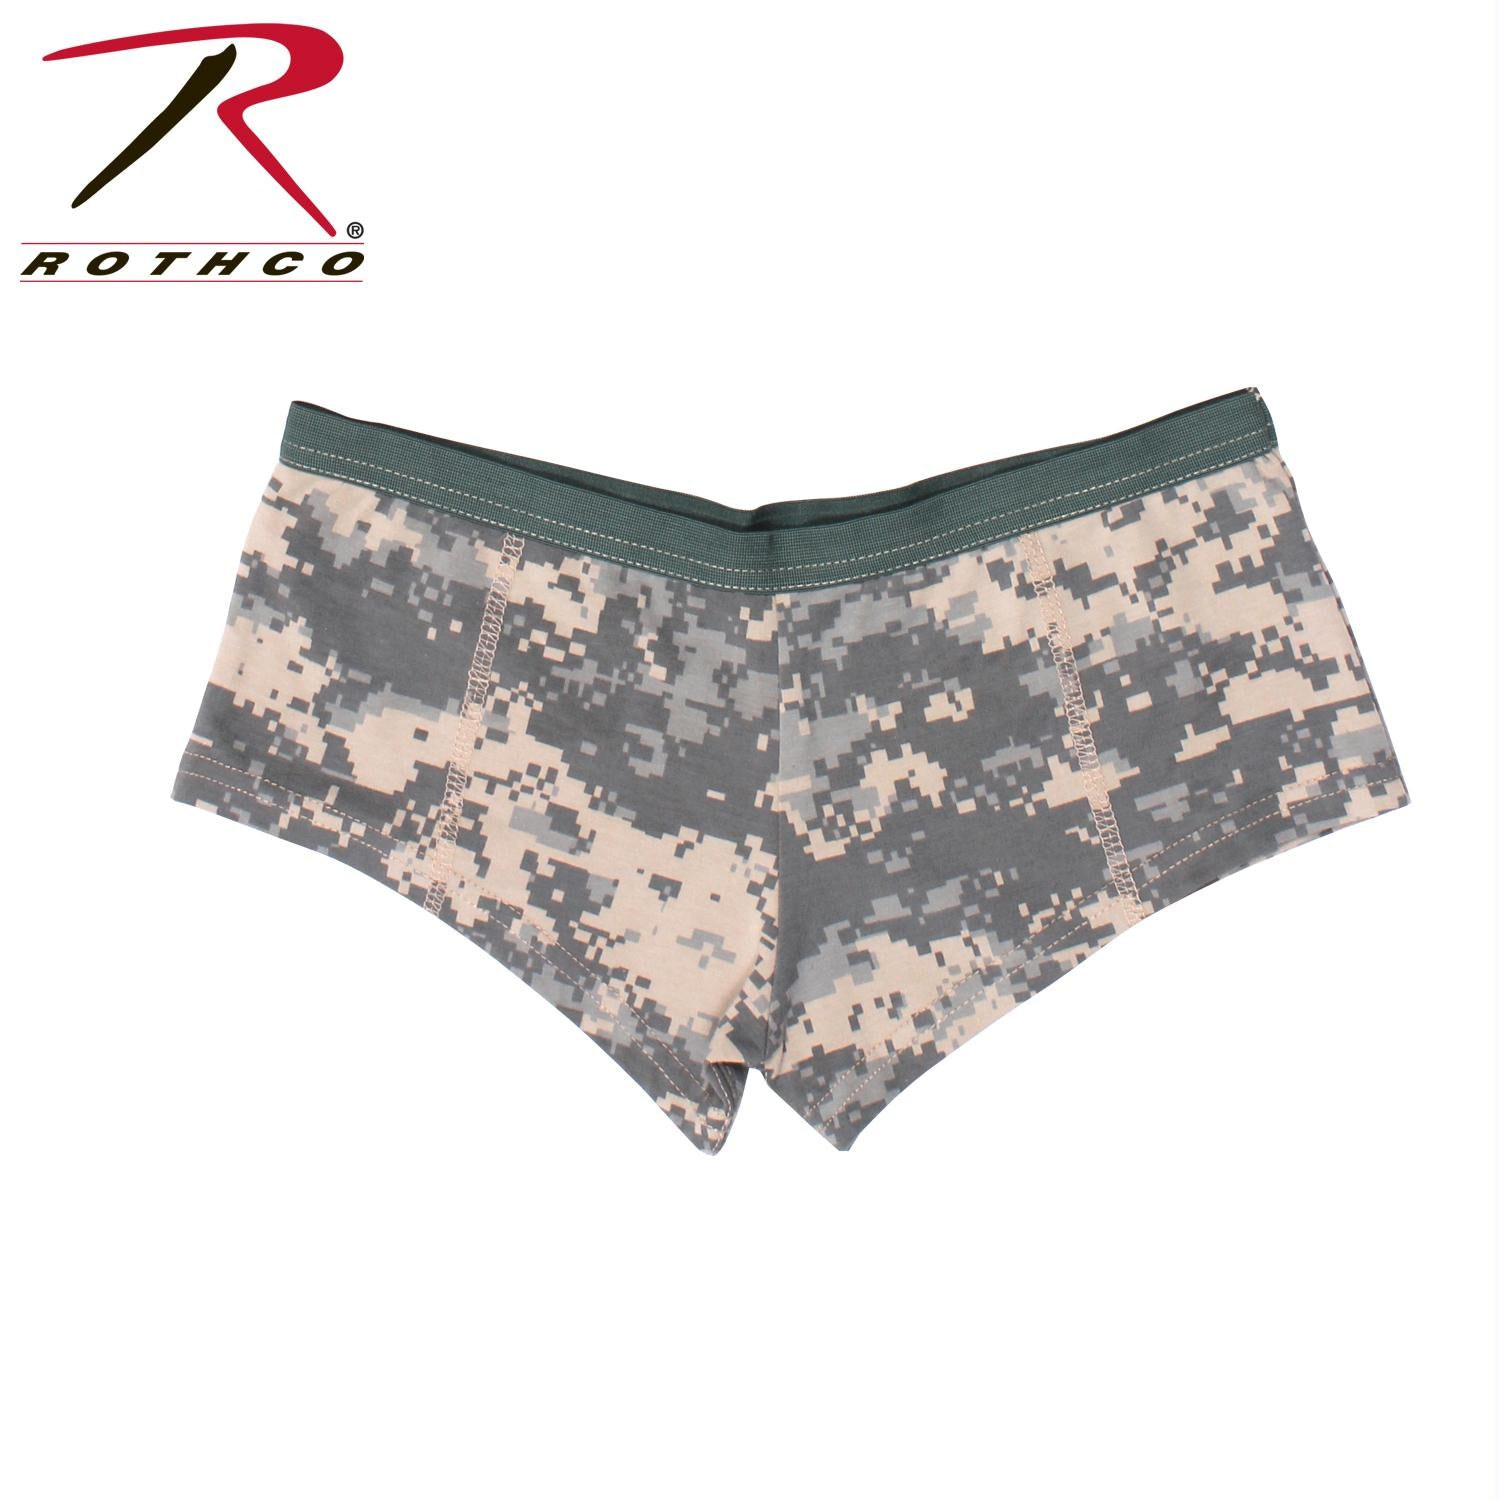 Rothco Womens ACU Digital Camo Booty Shorts - M